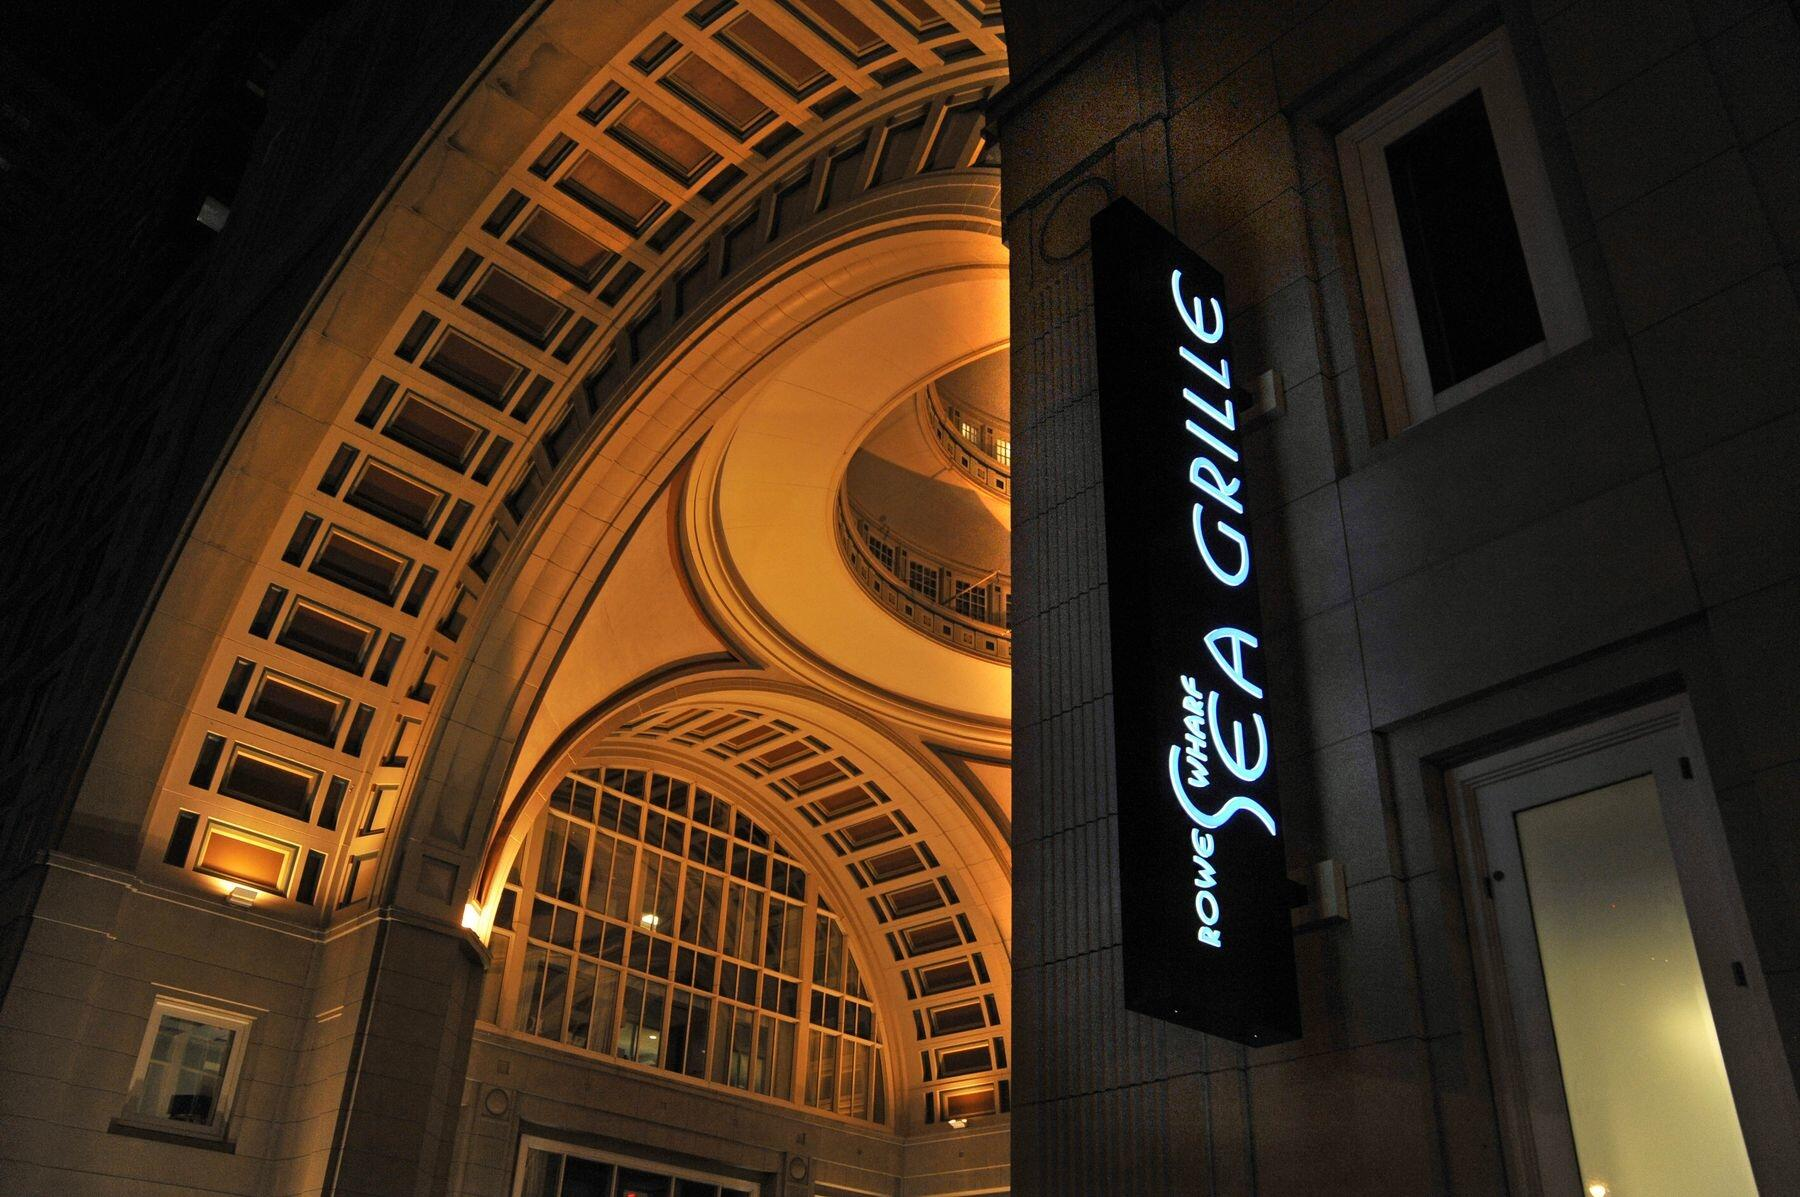 Rowes Wharf Sea Grille sign and entrance